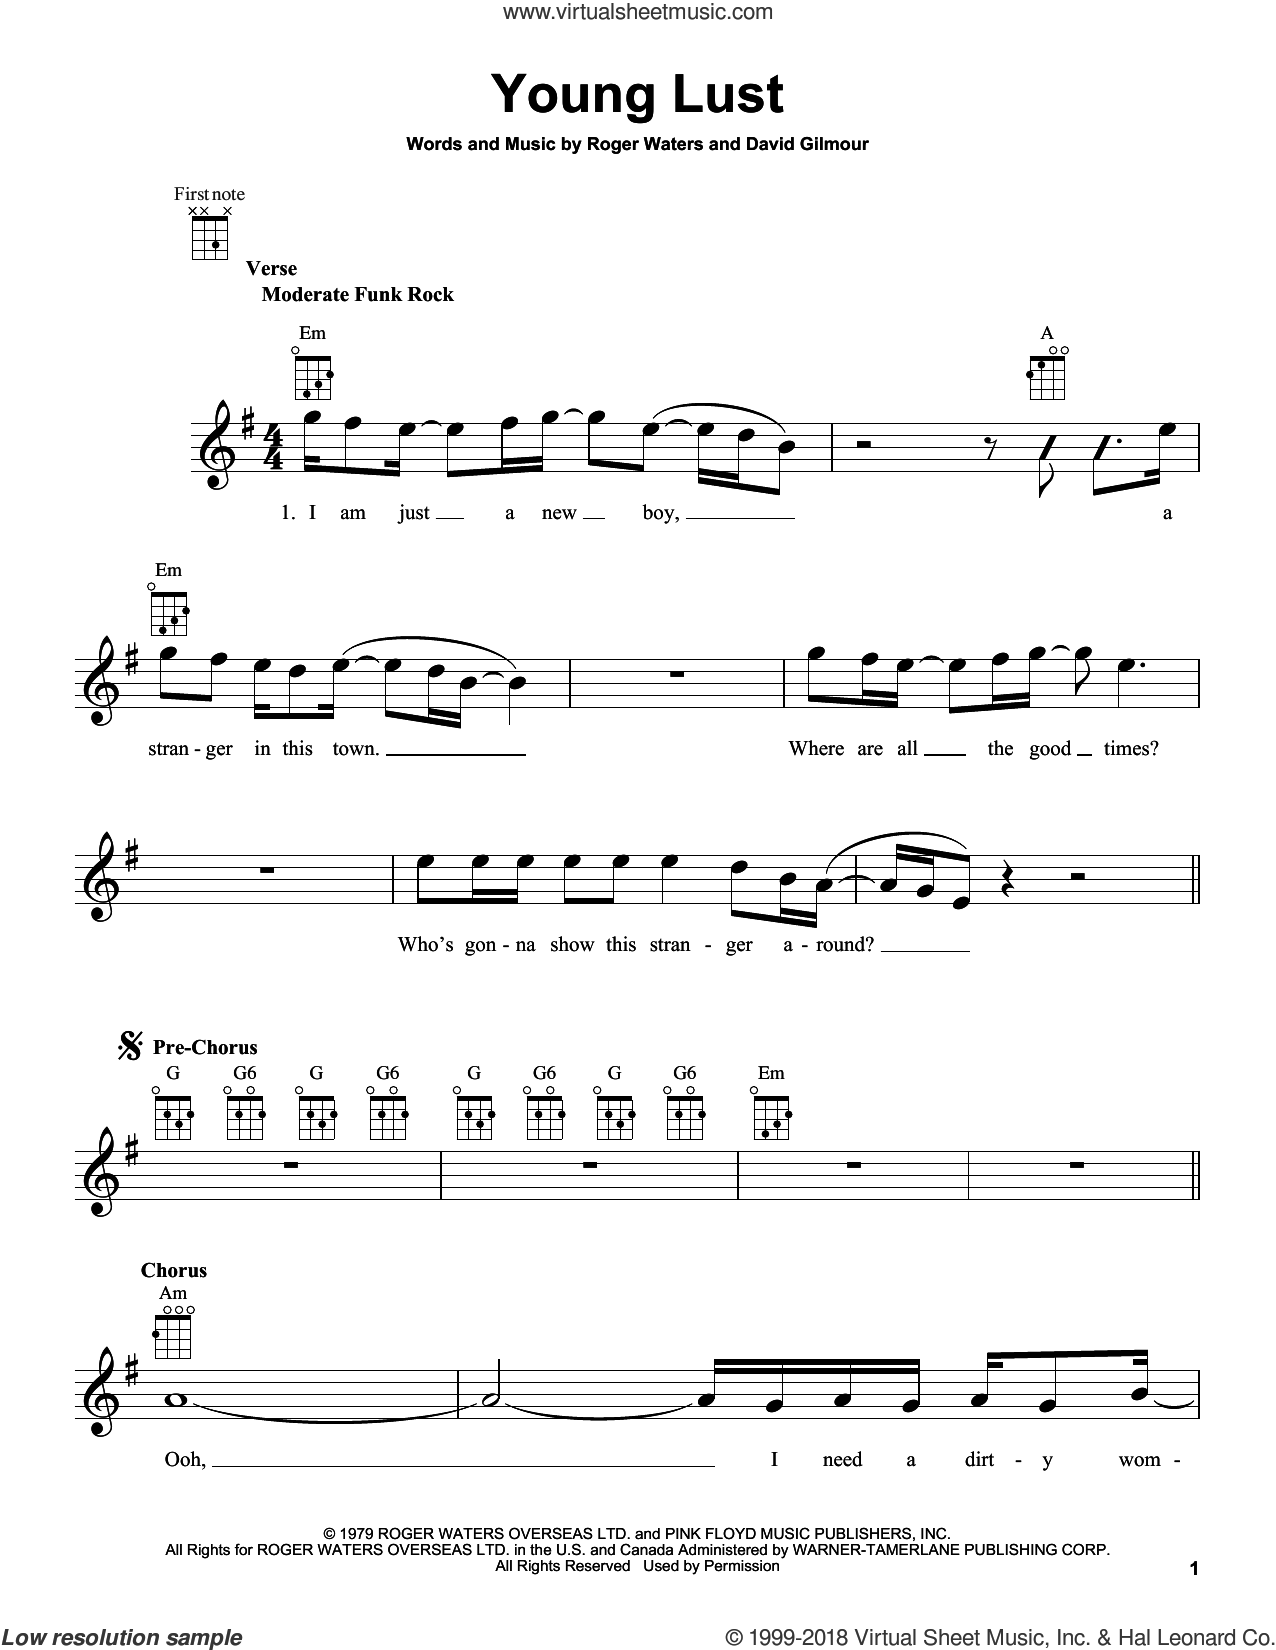 Young Lust sheet music for ukulele by Pink Floyd, David Gilmour and Roger Waters, intermediate skill level